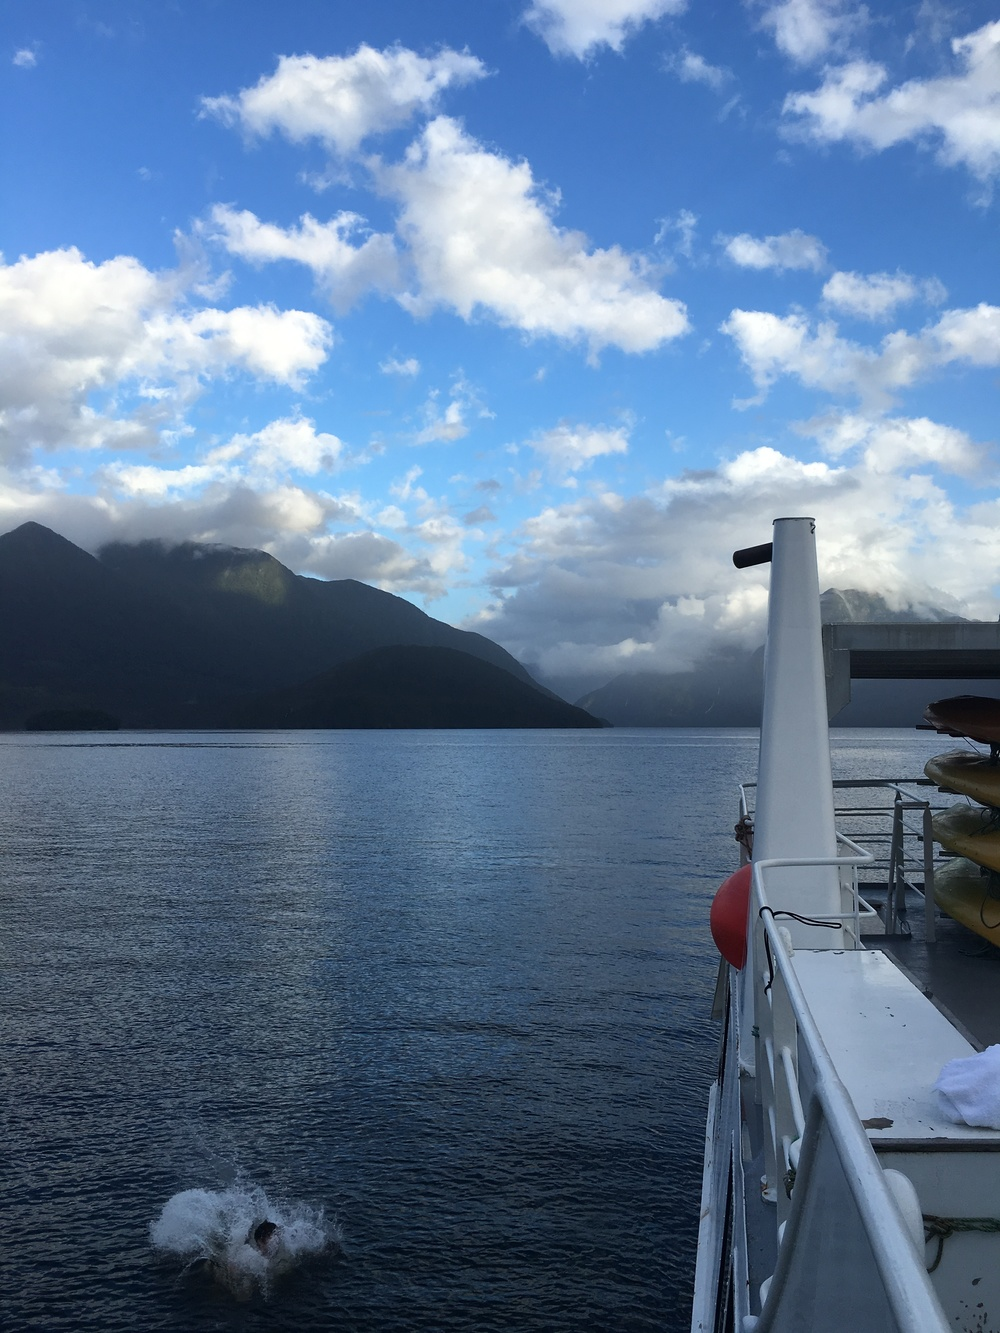 Icy plunge into Doubtful Sound